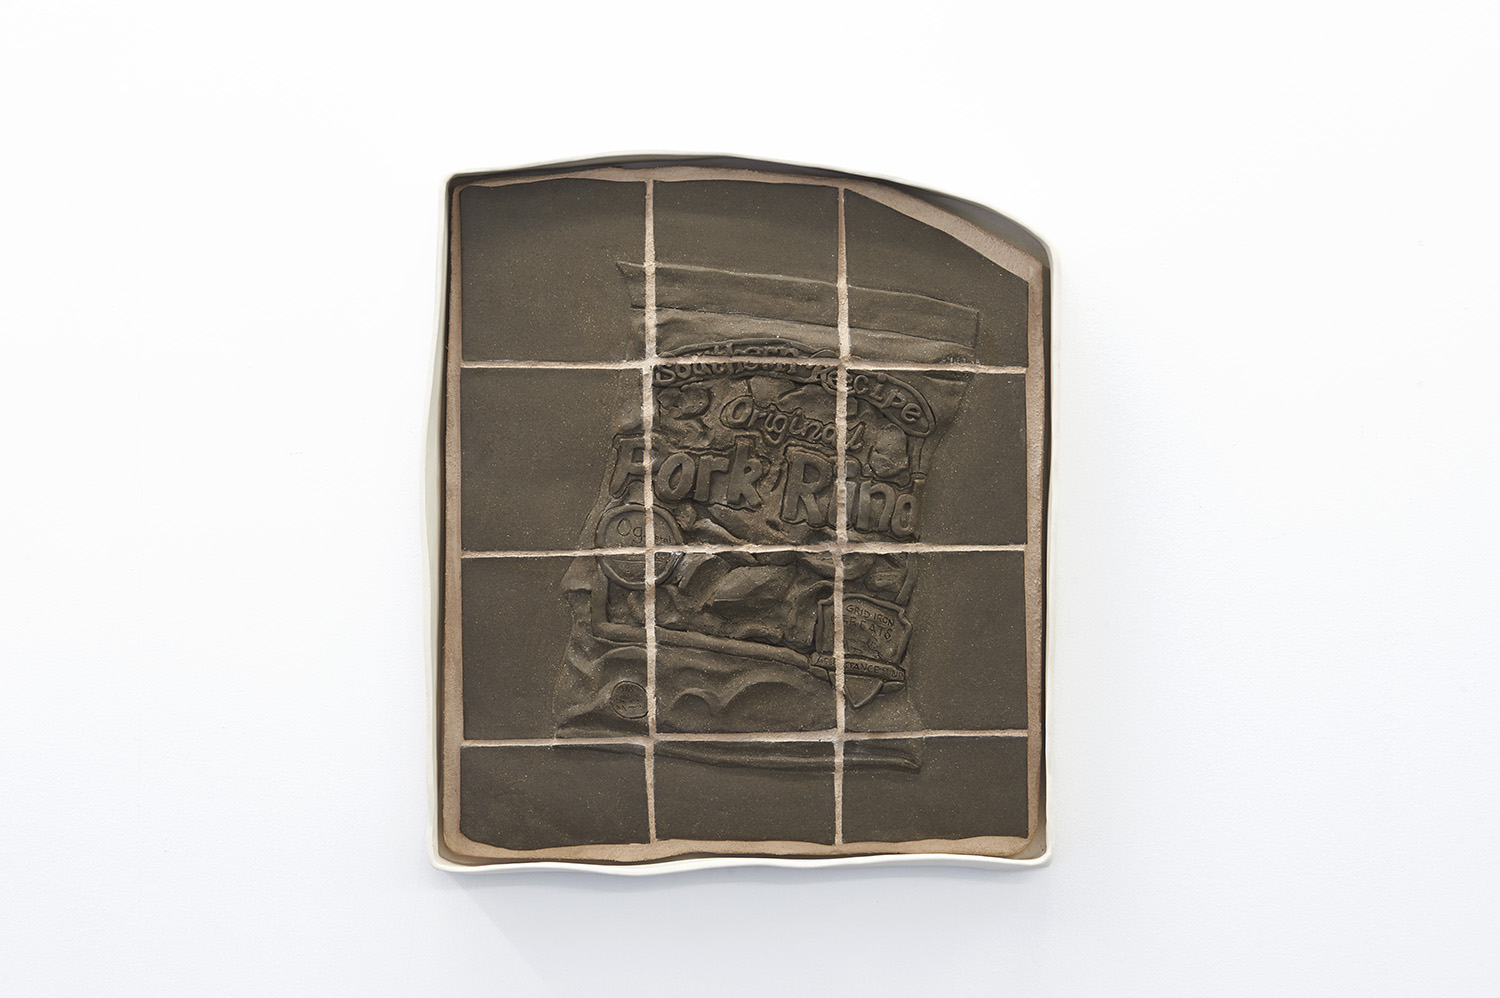 "<p><span class=""name"">Patrice Renee Washington</span><br><em>Southern Recipe</em><span class='media'>Porcelain frame, stoneware, grout, plywood</span>15 x 13.5 x 3 in  (38.1 x 34.3 x 7.6 cm)<br>2016<br><a class='inquire' href='mailto:info@gildargallery.com?subject=Artwork Inquiry PWAS0008&body=I am interested in finding out more about Southern Recipe by Patrice Renee Washington'>Inquire</a></p>"